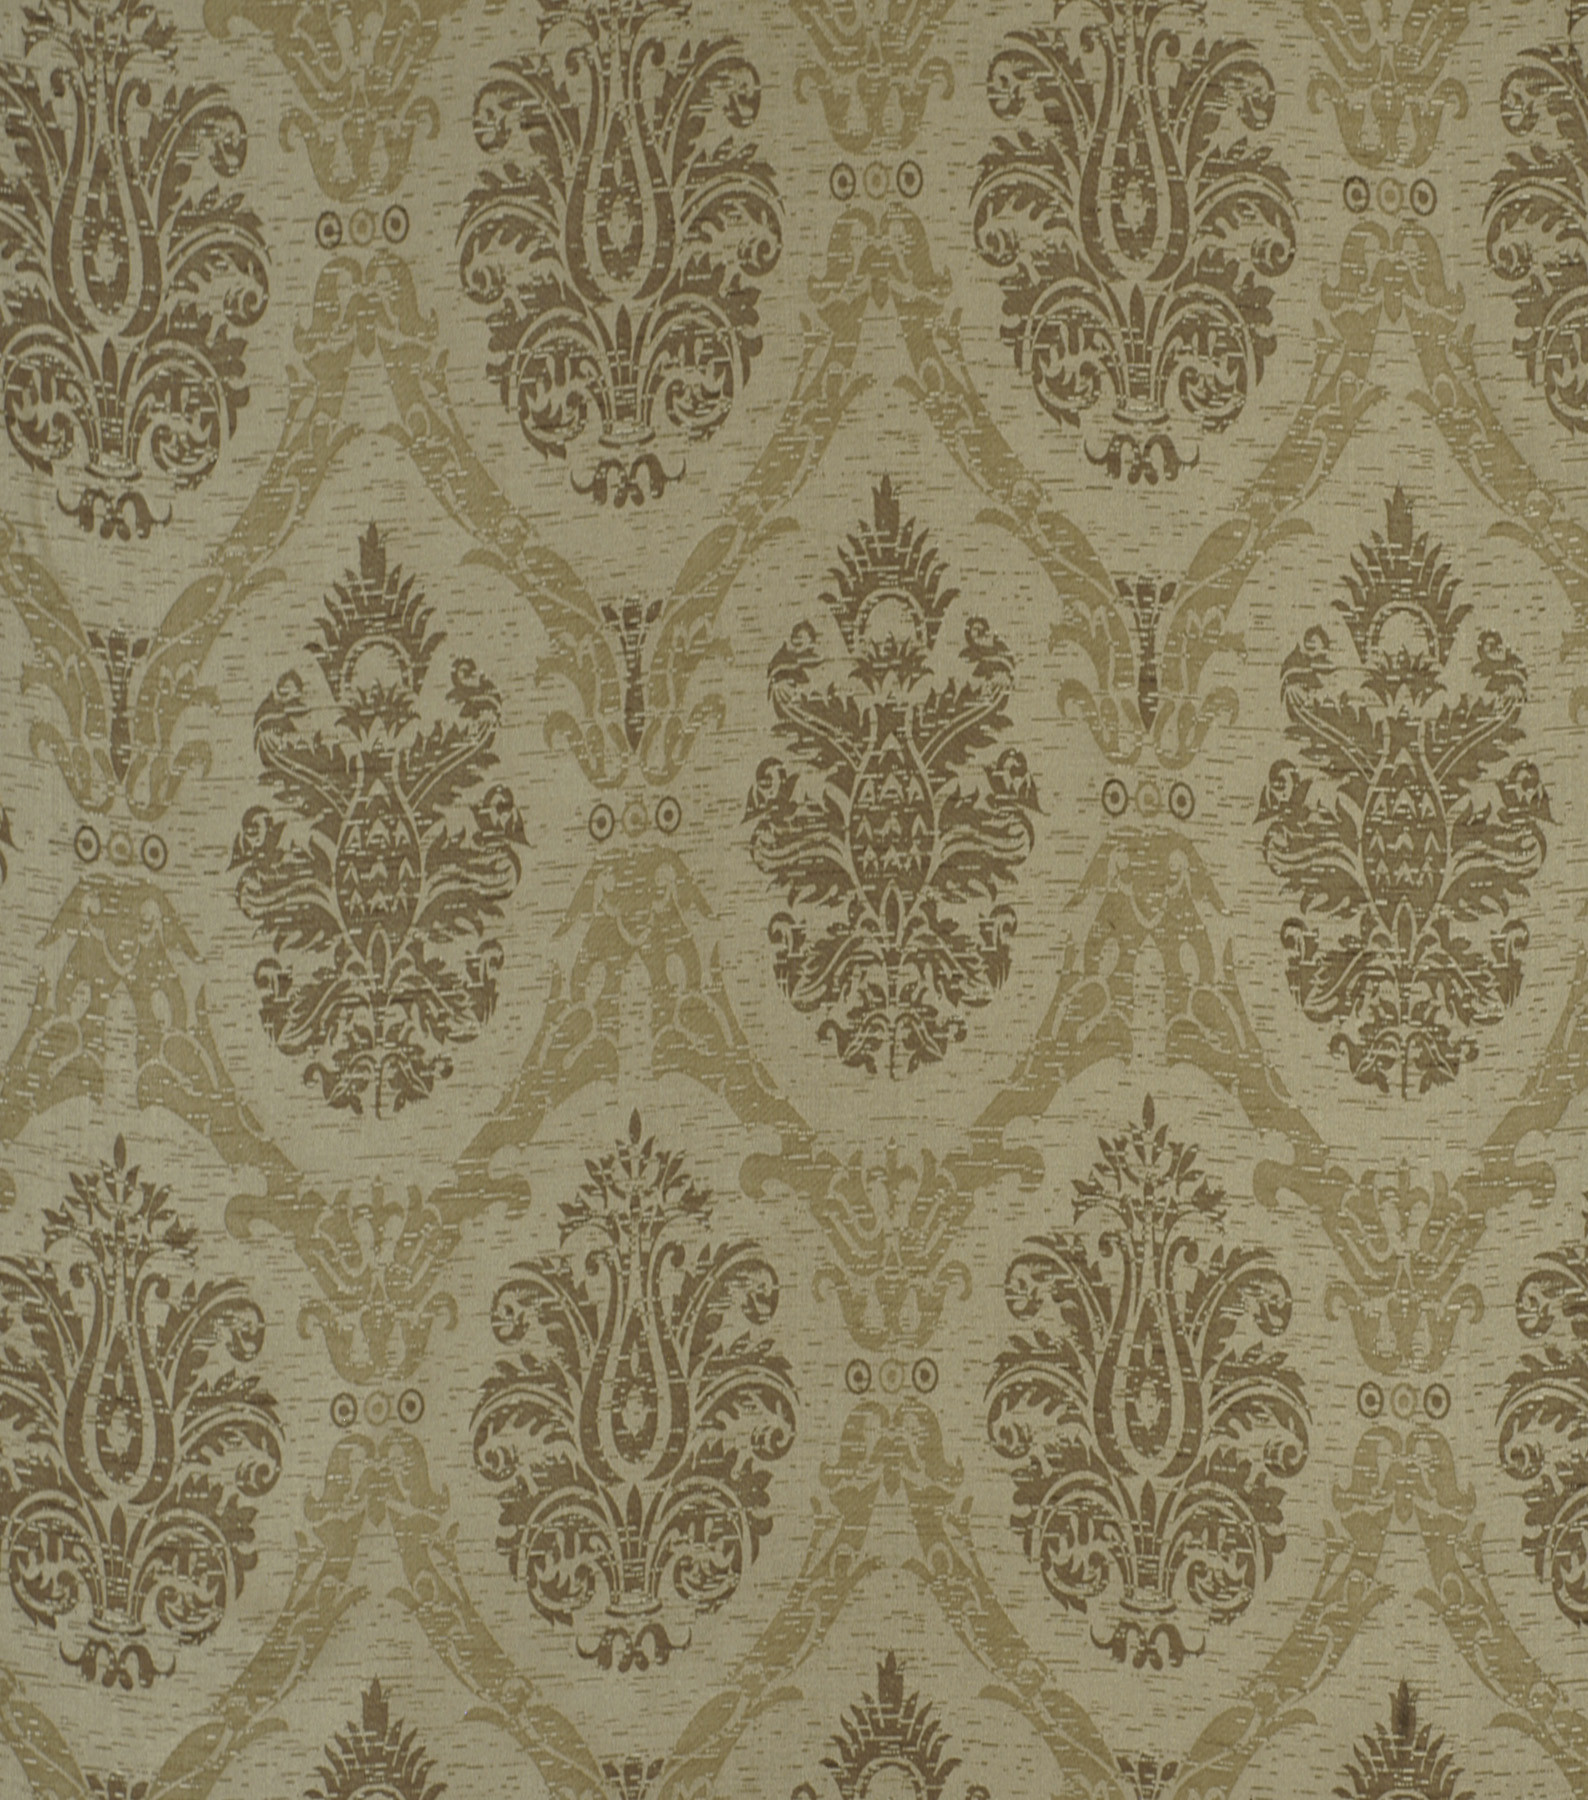 Home Decor 8\u0022x8\u0022 Fabric Swatch-Print Fabric Signature Series Show House Latte